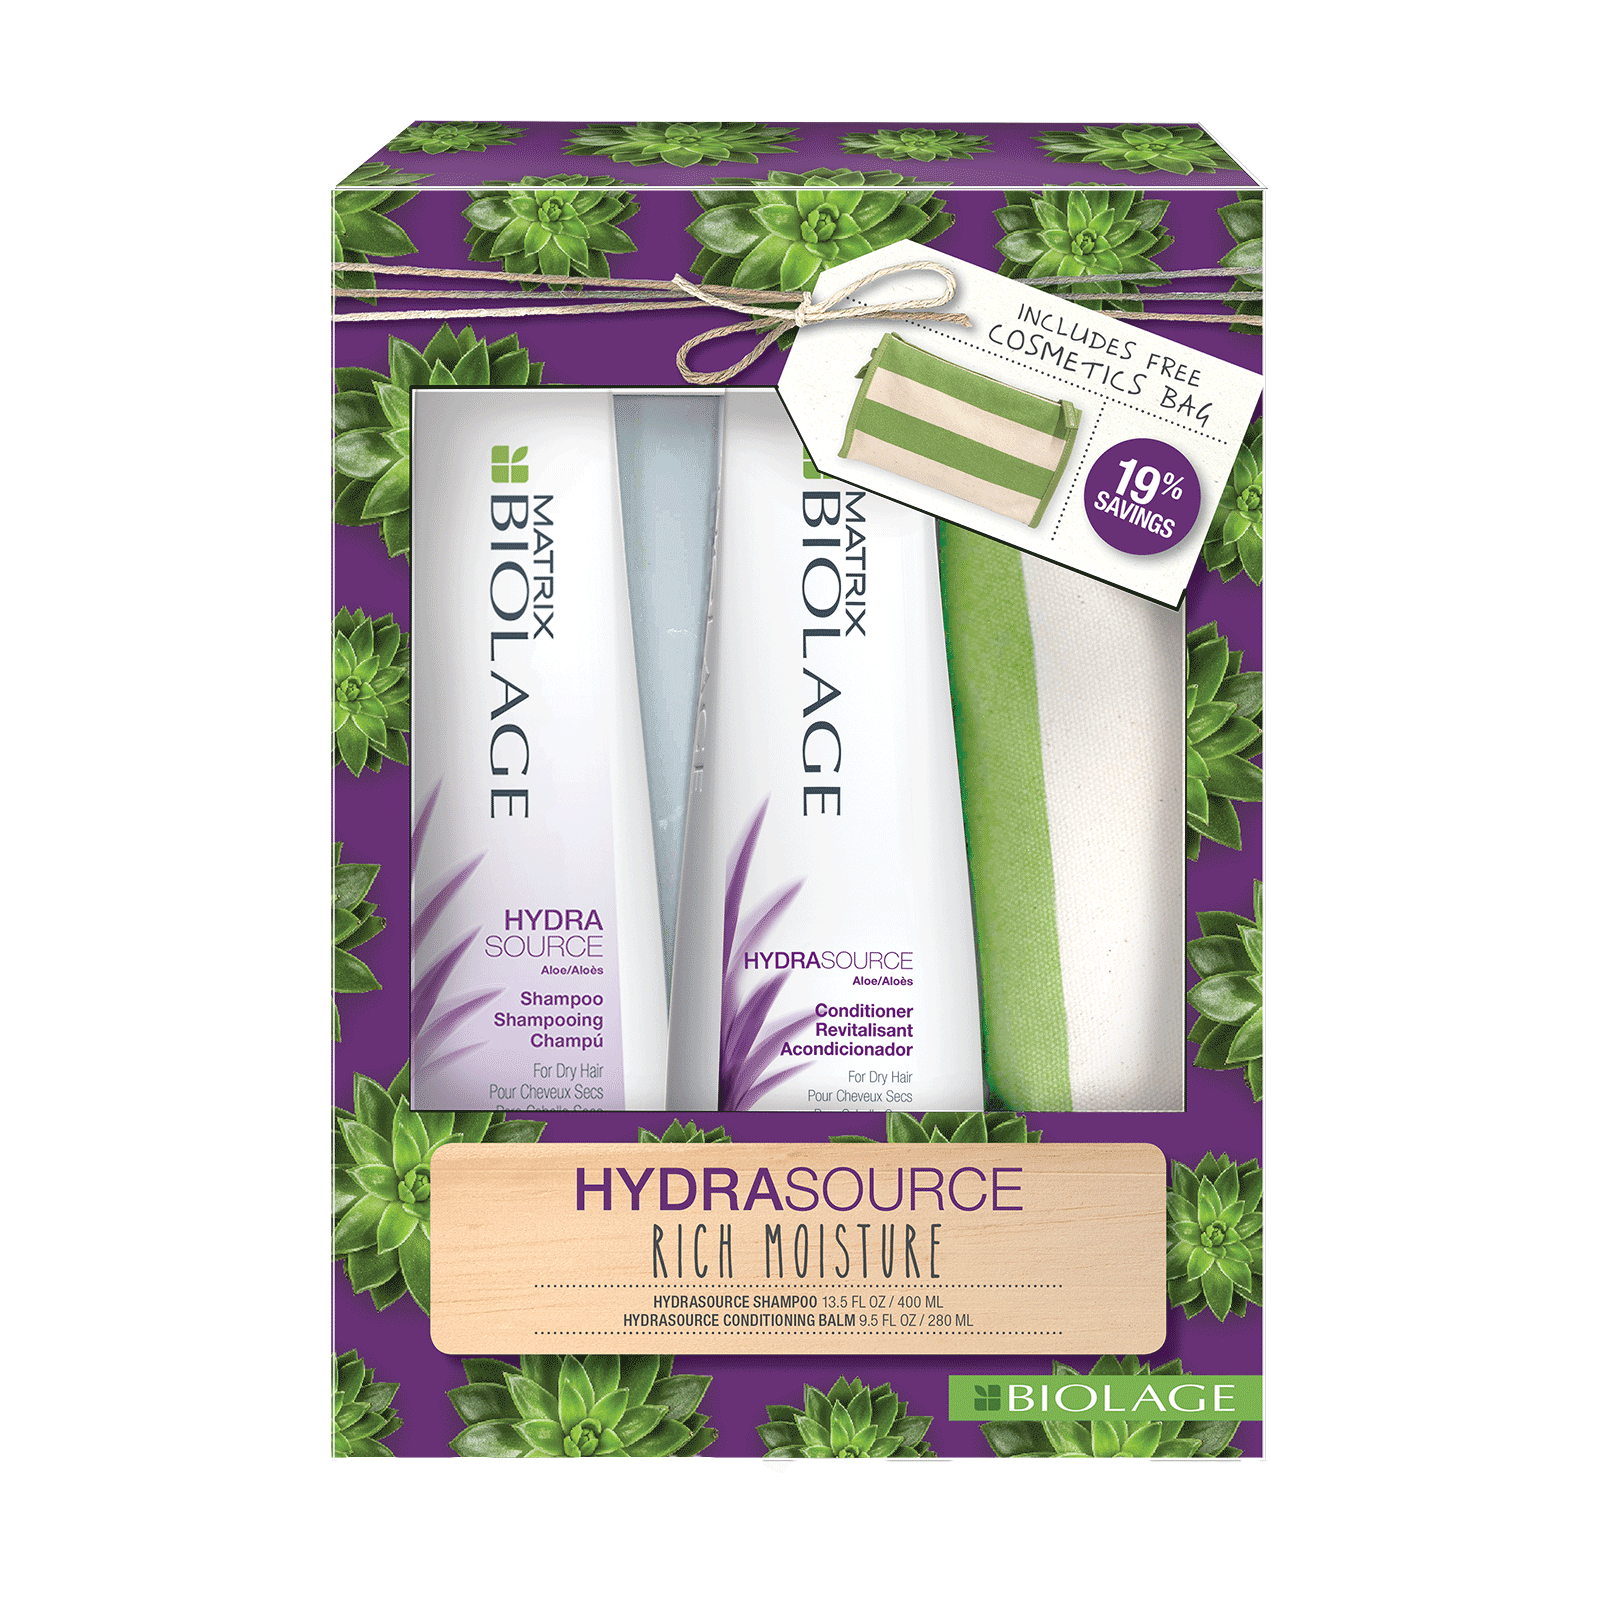 Biolage HydraSource Shampoo, Conditioner with Travel Bag